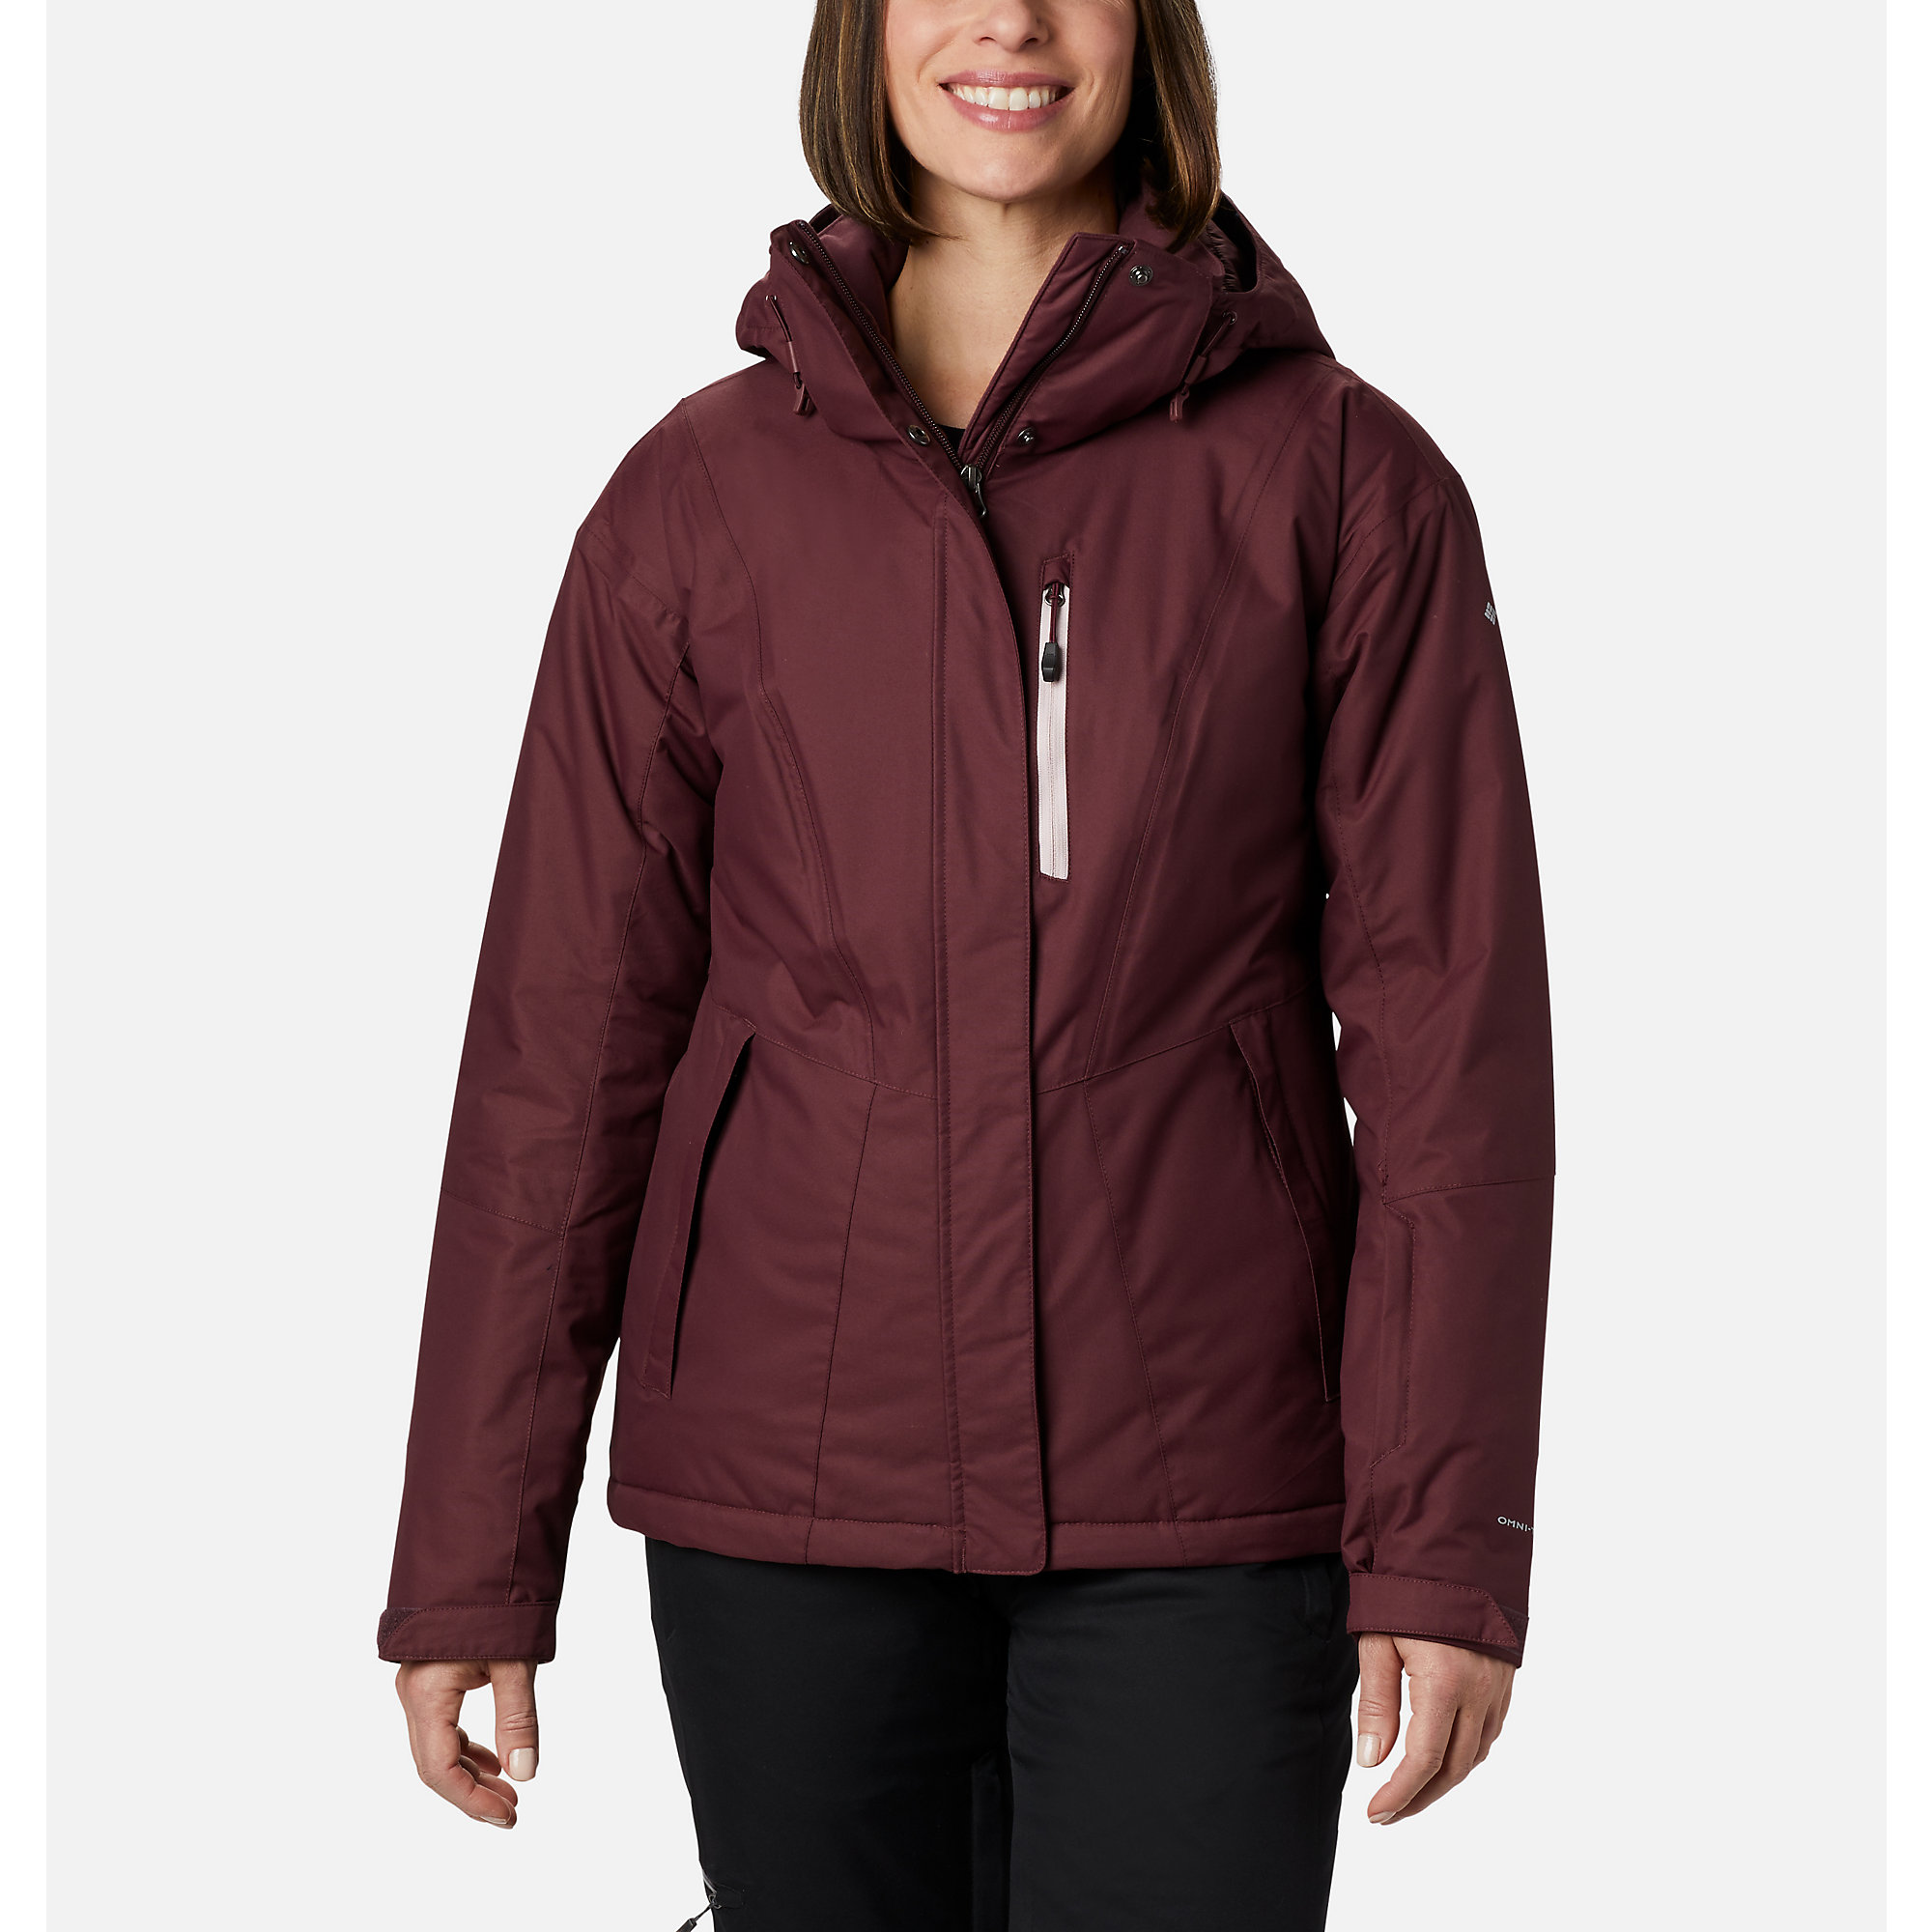 Columbia Columbia Last Tracks Insulated Jacket 671 XS from Columbia Sportswear | Daily Mail